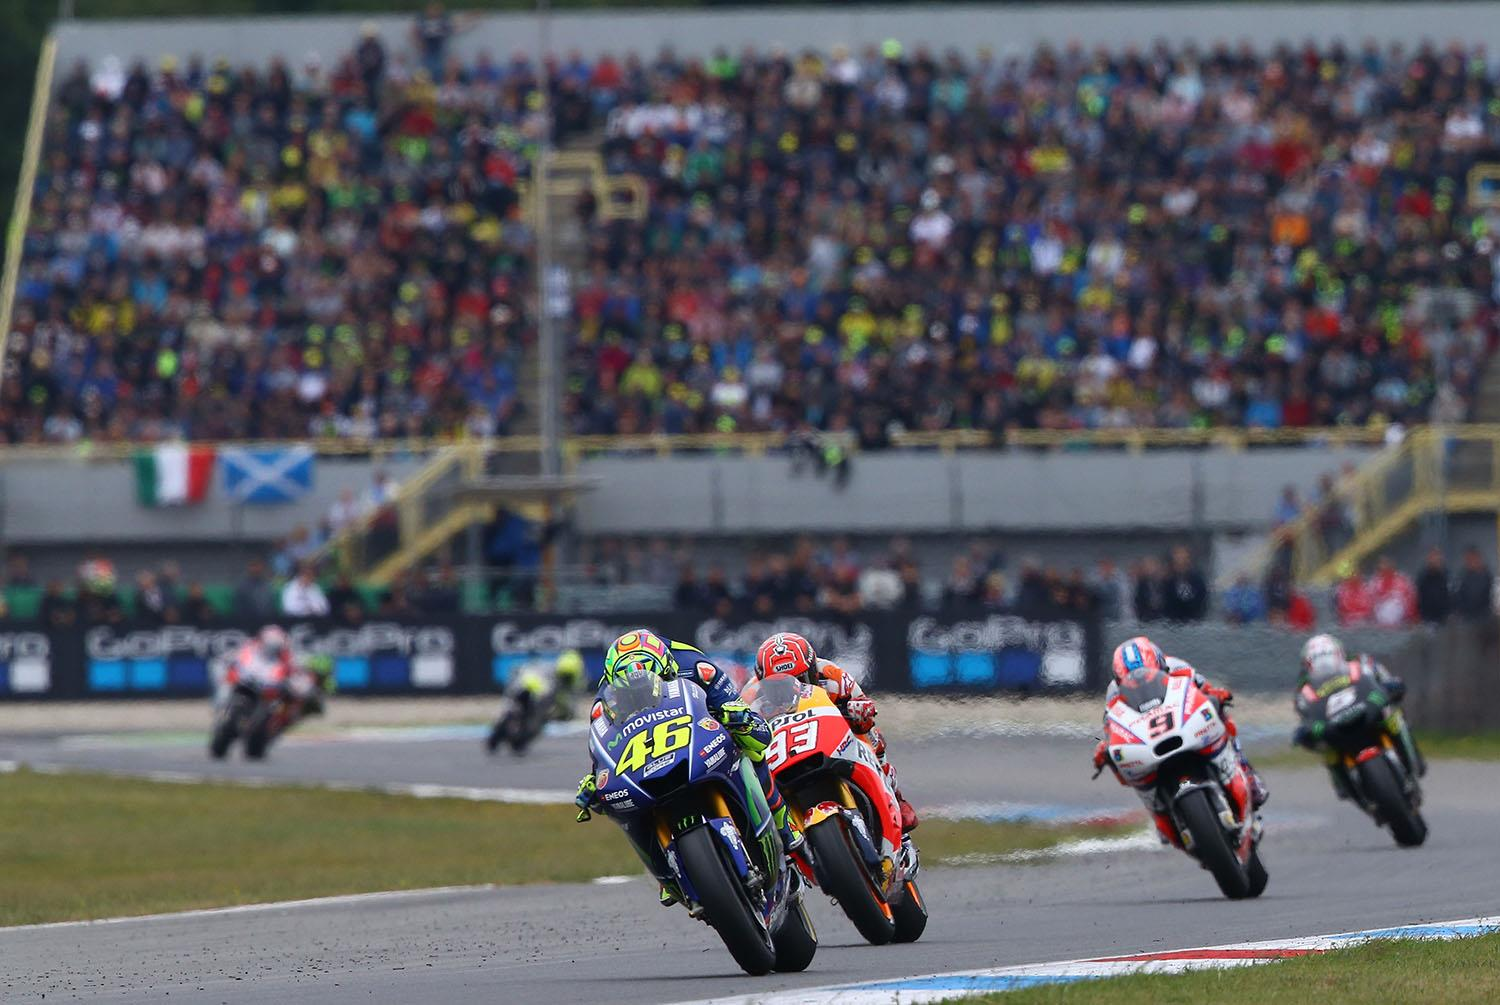 MotoGP Rider of the Year: 5th - Valentino Rossi